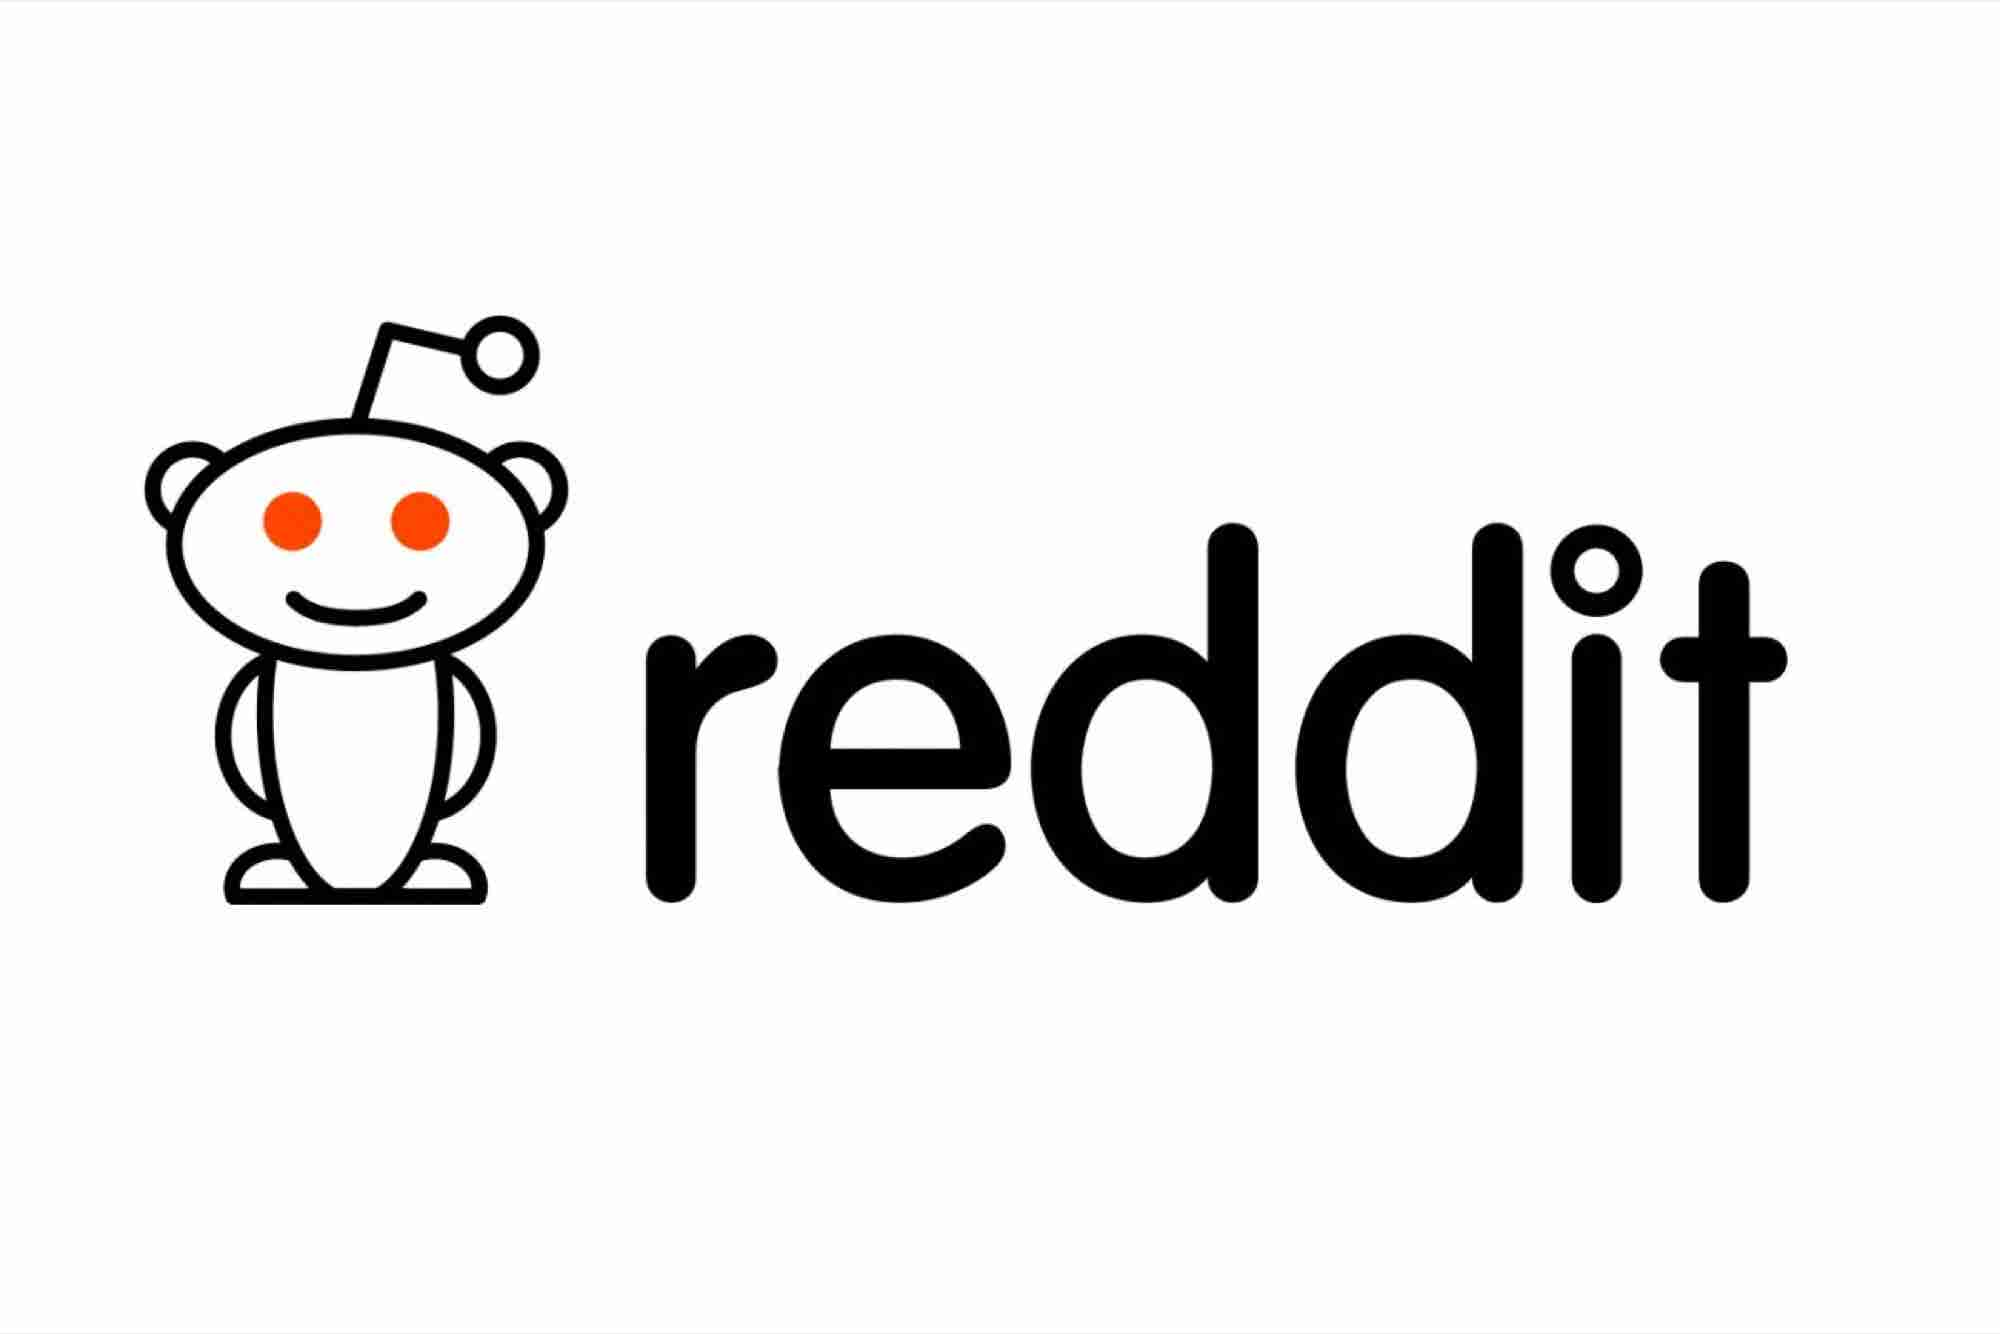 7 Tips To Building Your Own Authentic Community on Reddit